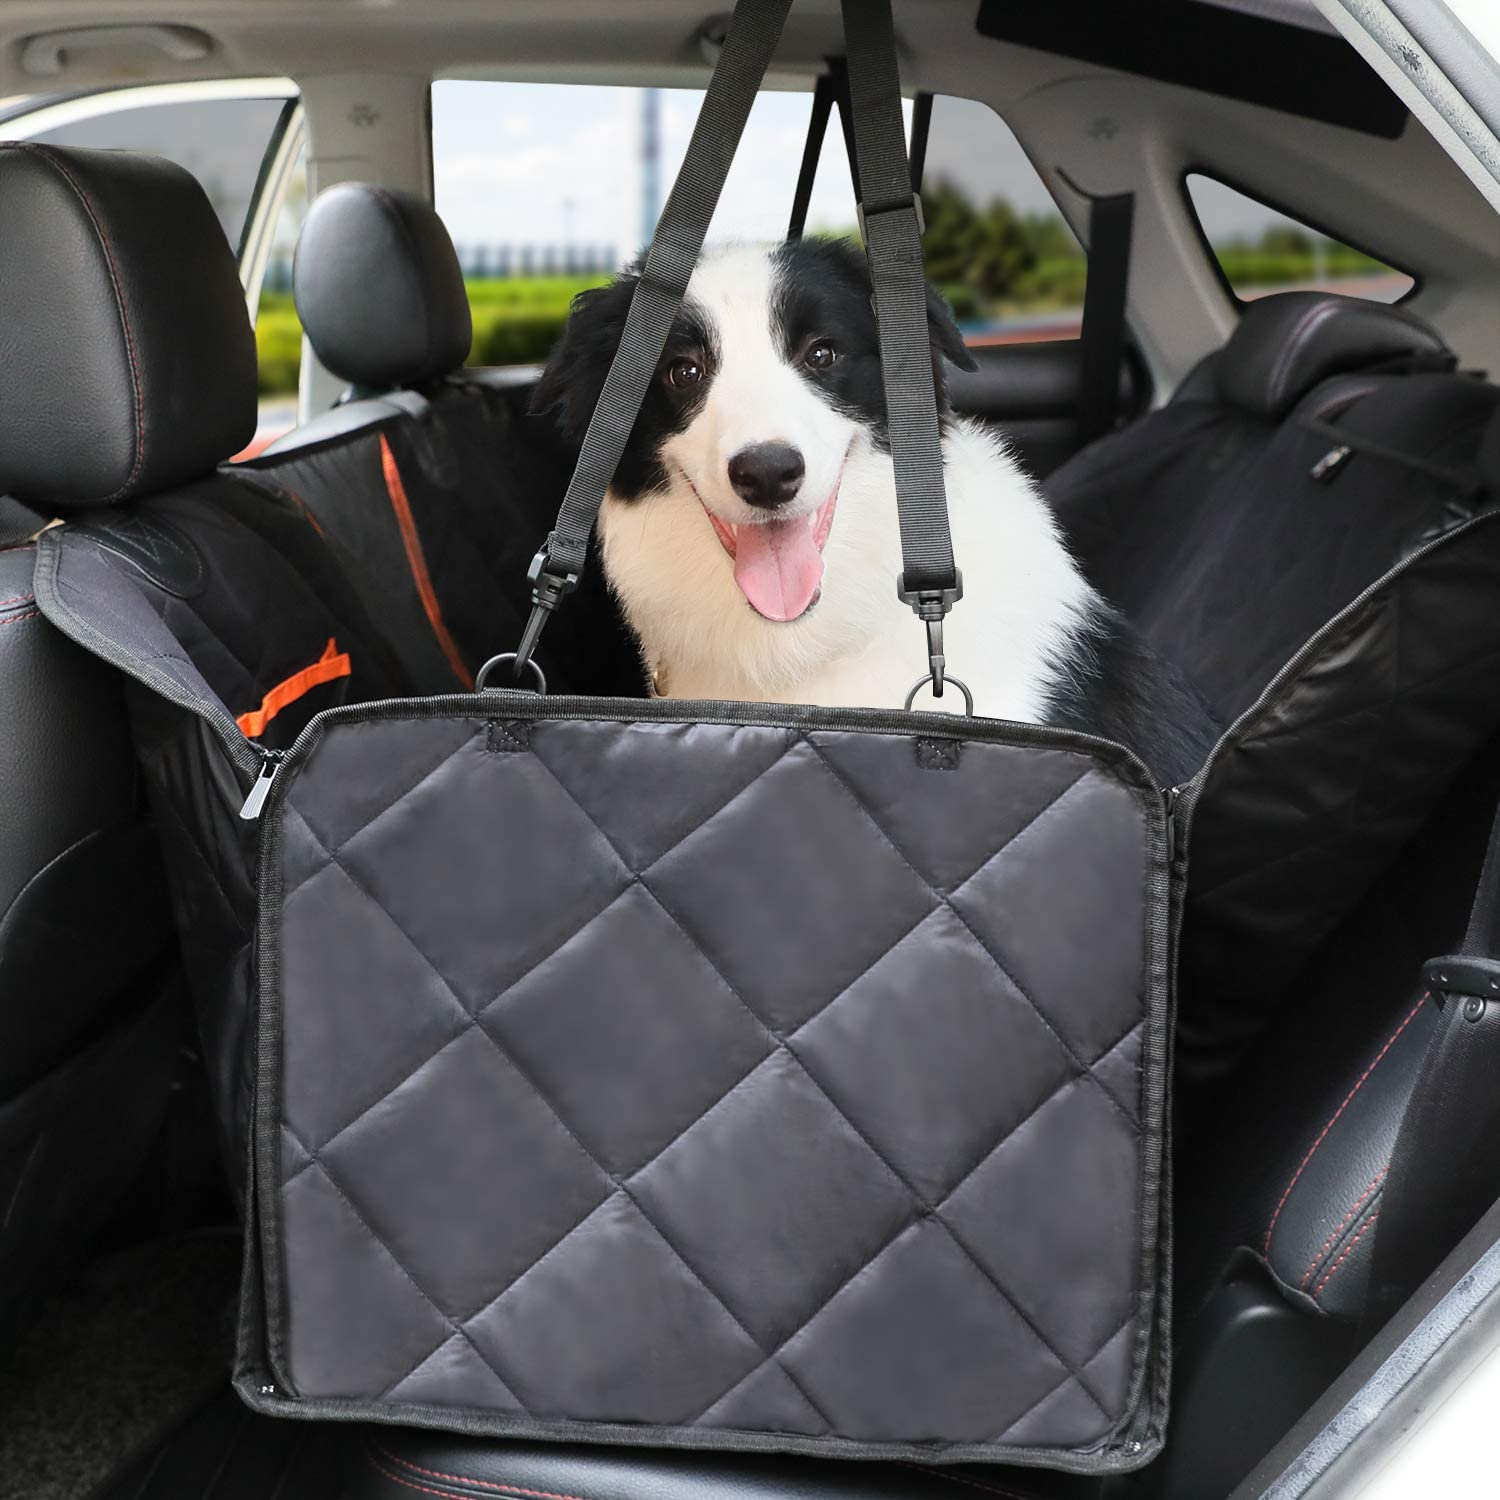 Dog Seat Covers, Nonslip Seat Covers for Dog with Mesh and Convertible Side Flaps, Dog Car Seat Covers Easy to Install and Clean Fits for Cars